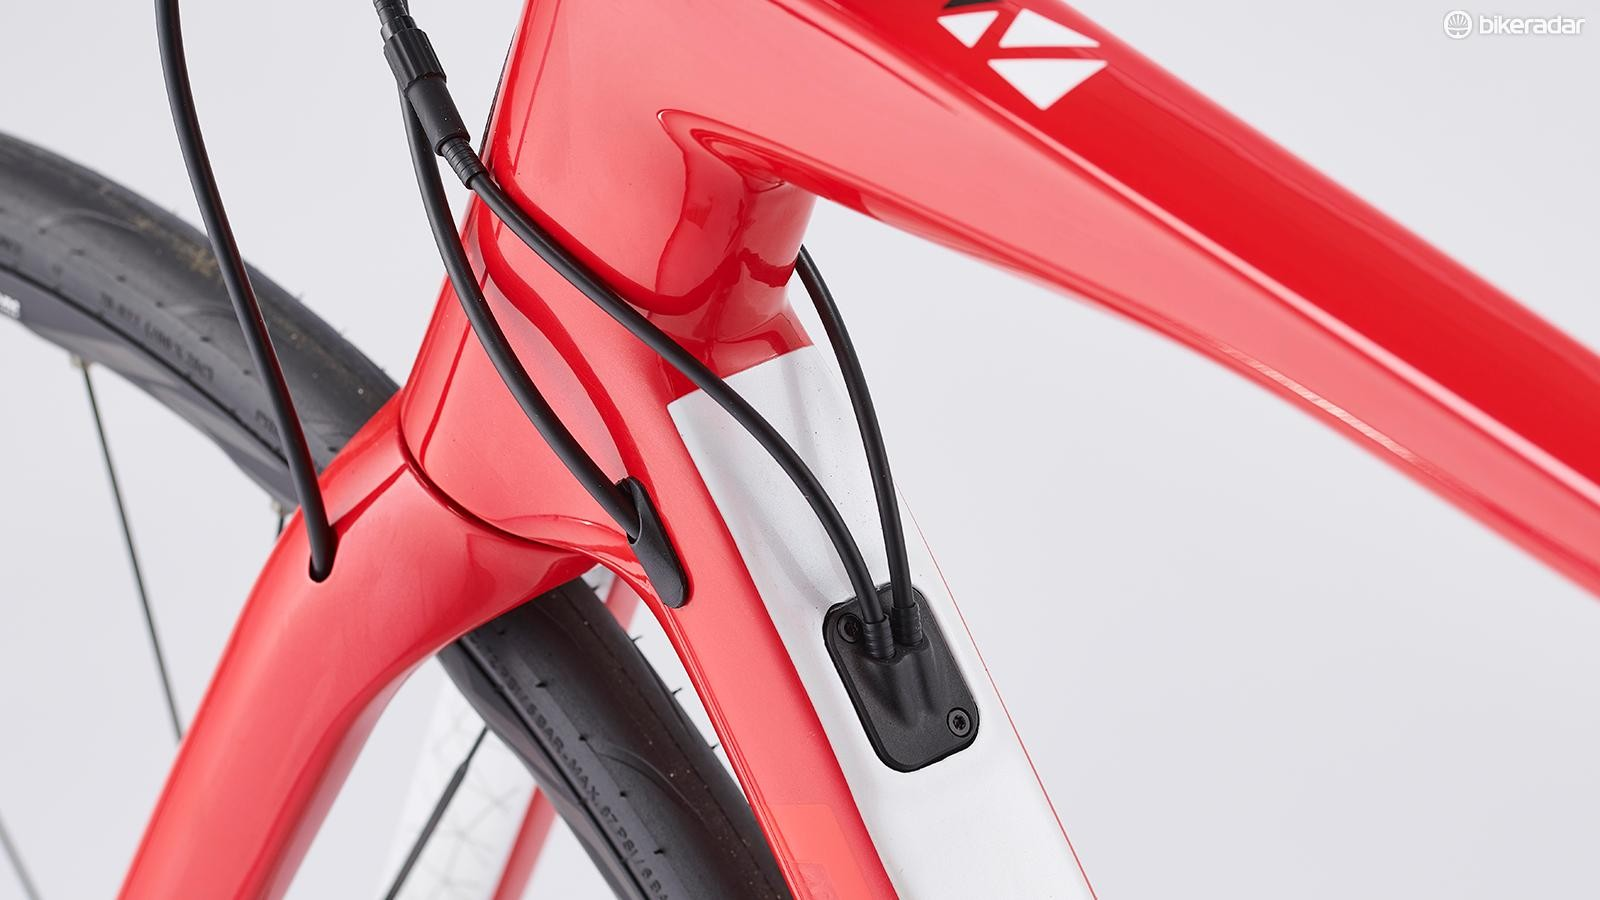 The new fork has fully integrated hydraulic cable routing